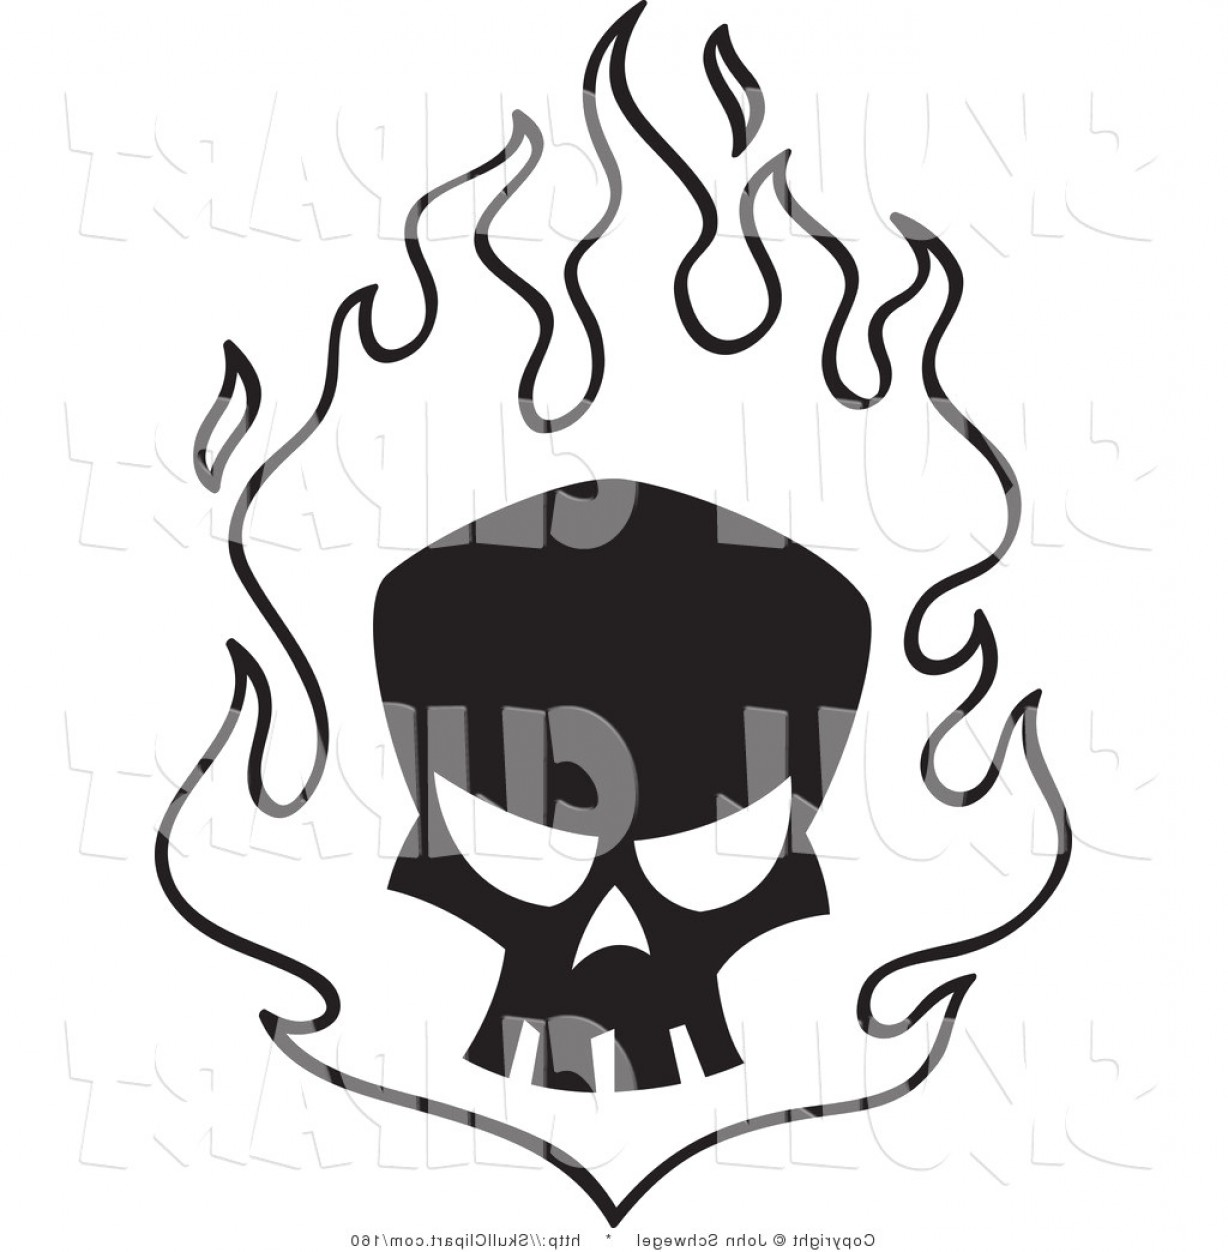 Fire Clip Art Vector: Fire Clipart Black And White Flame Vector Clip Art Of A Silhouetted Skull In Flames